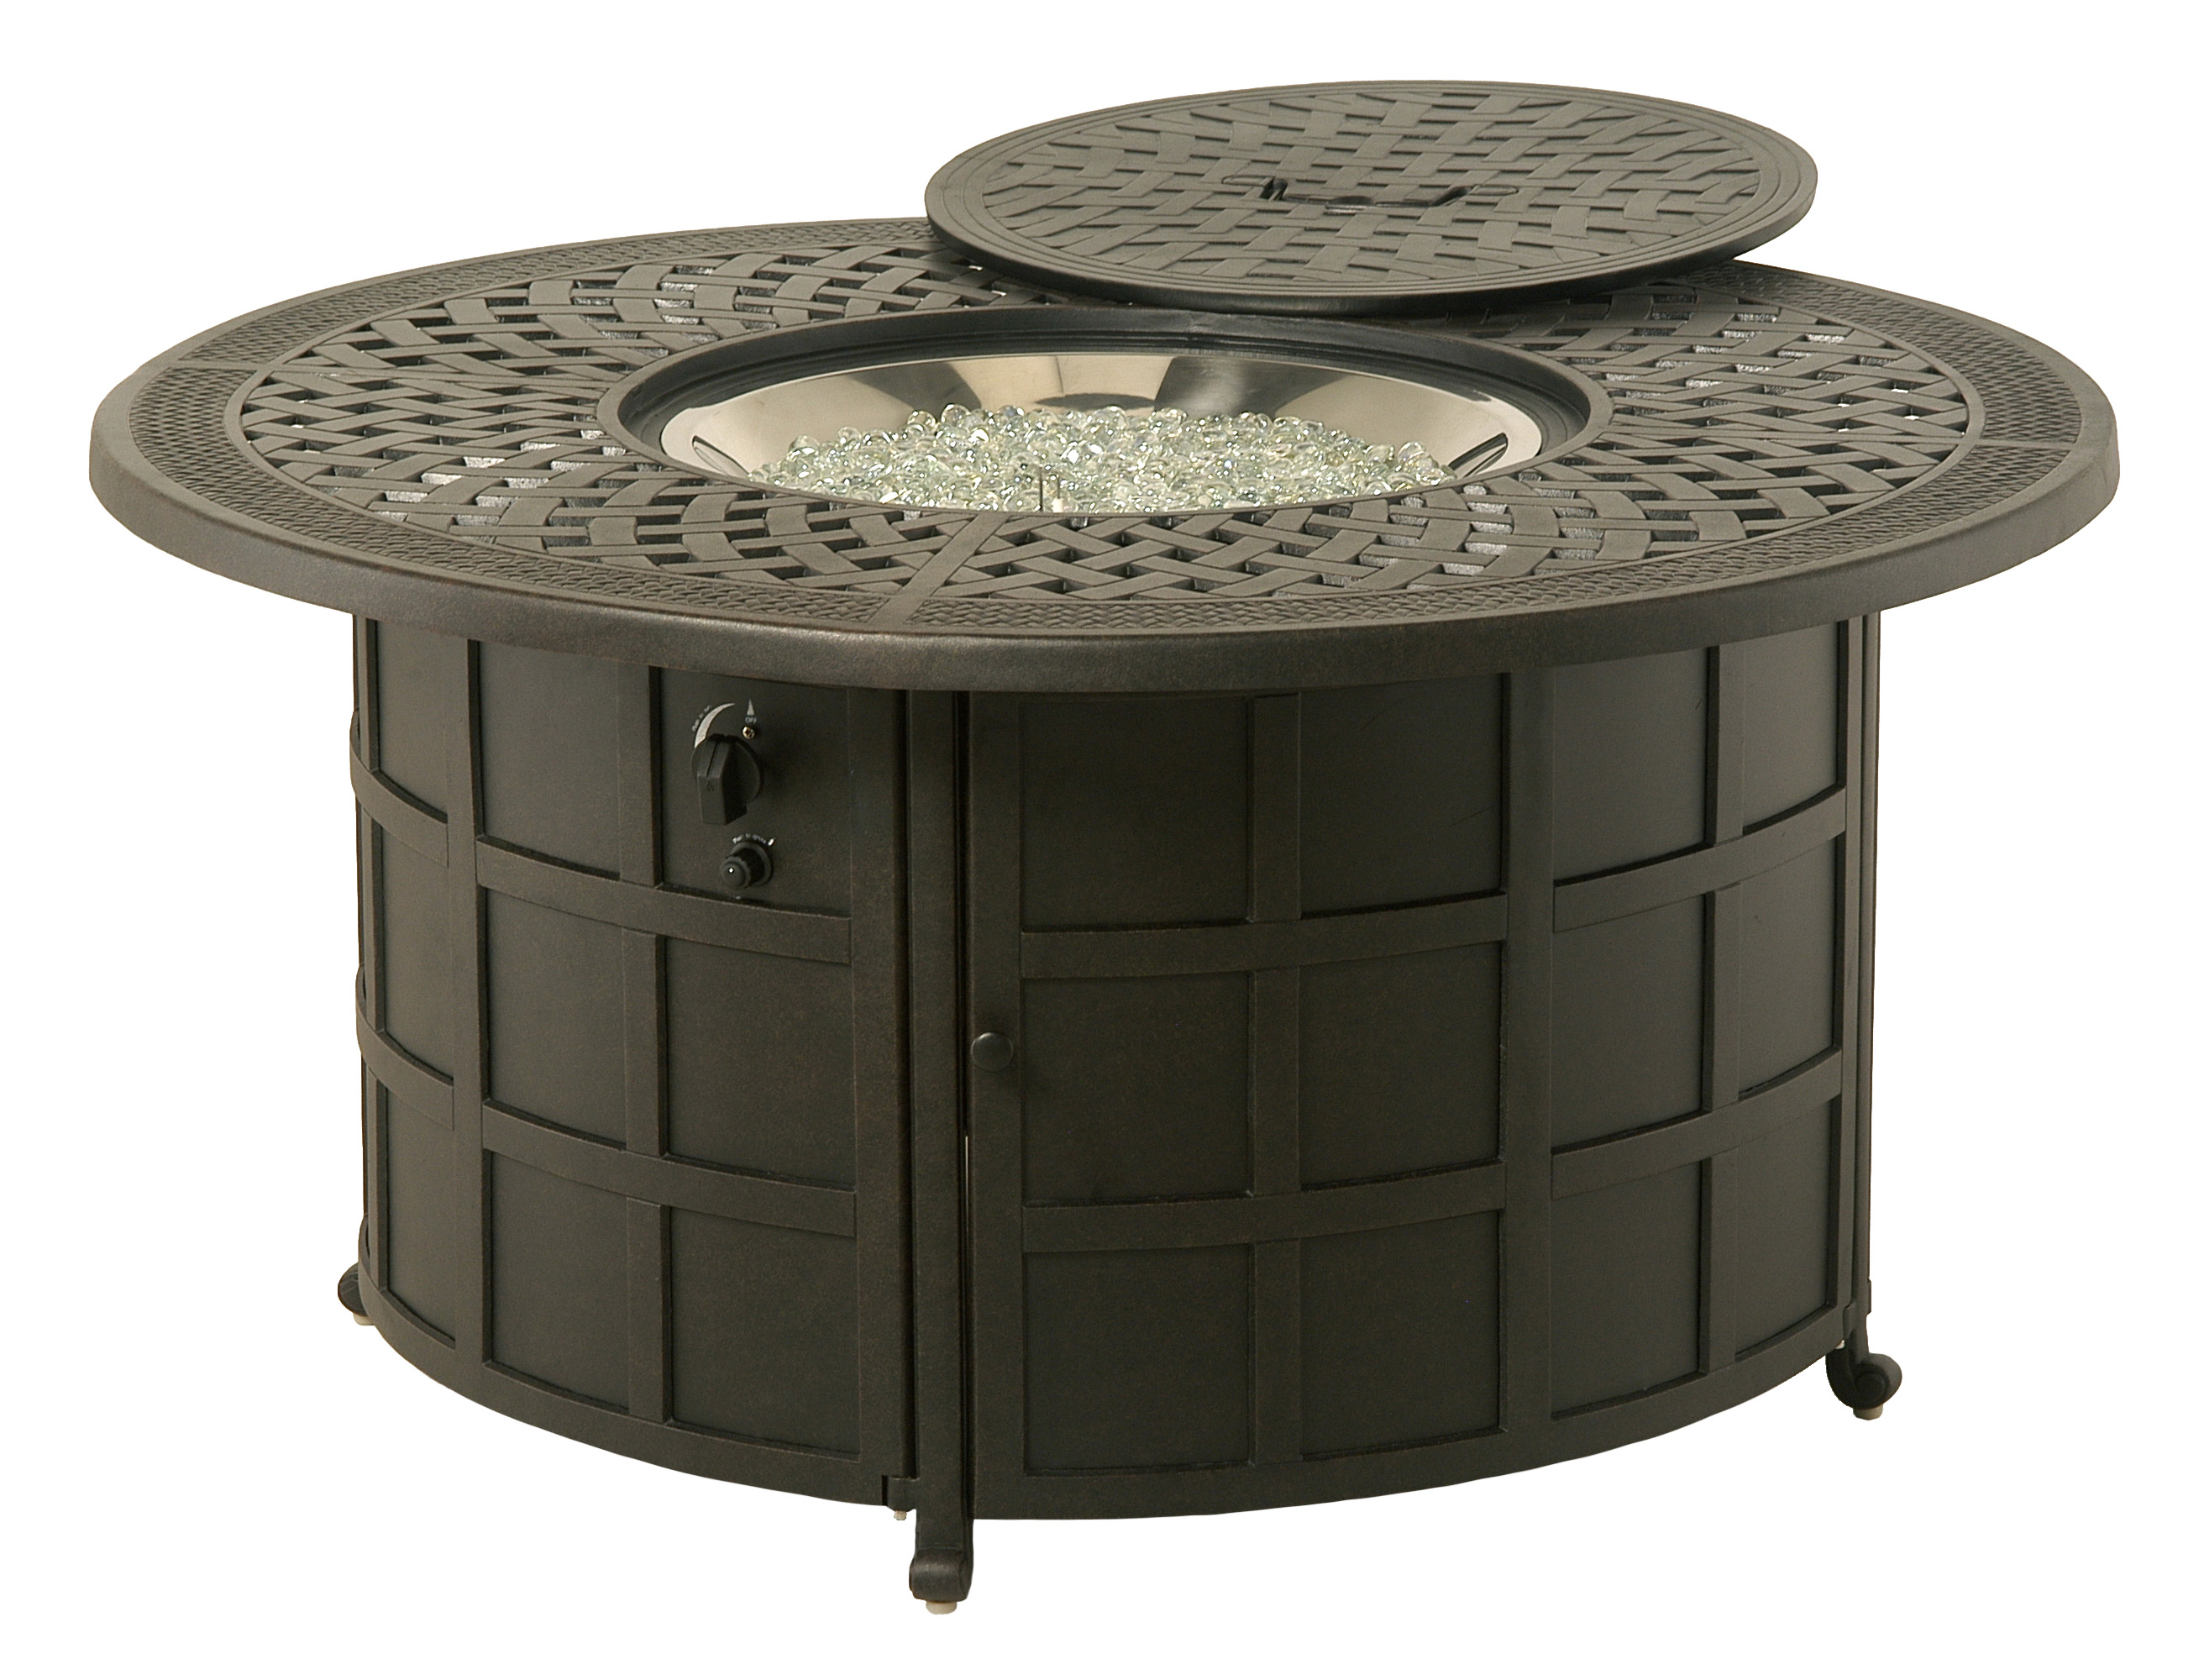 Warm Up Your Patio This Fall with a Firepit